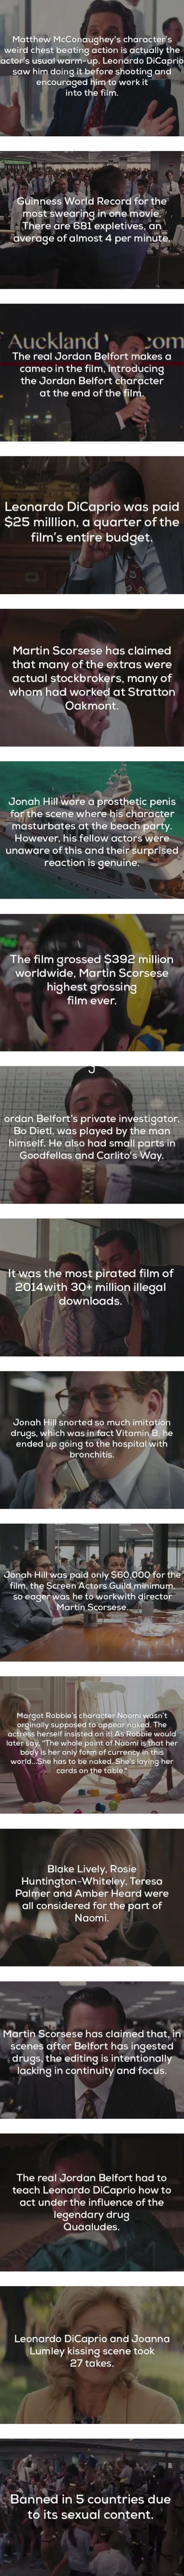 Interesting facts about The Wolf of Wall Street